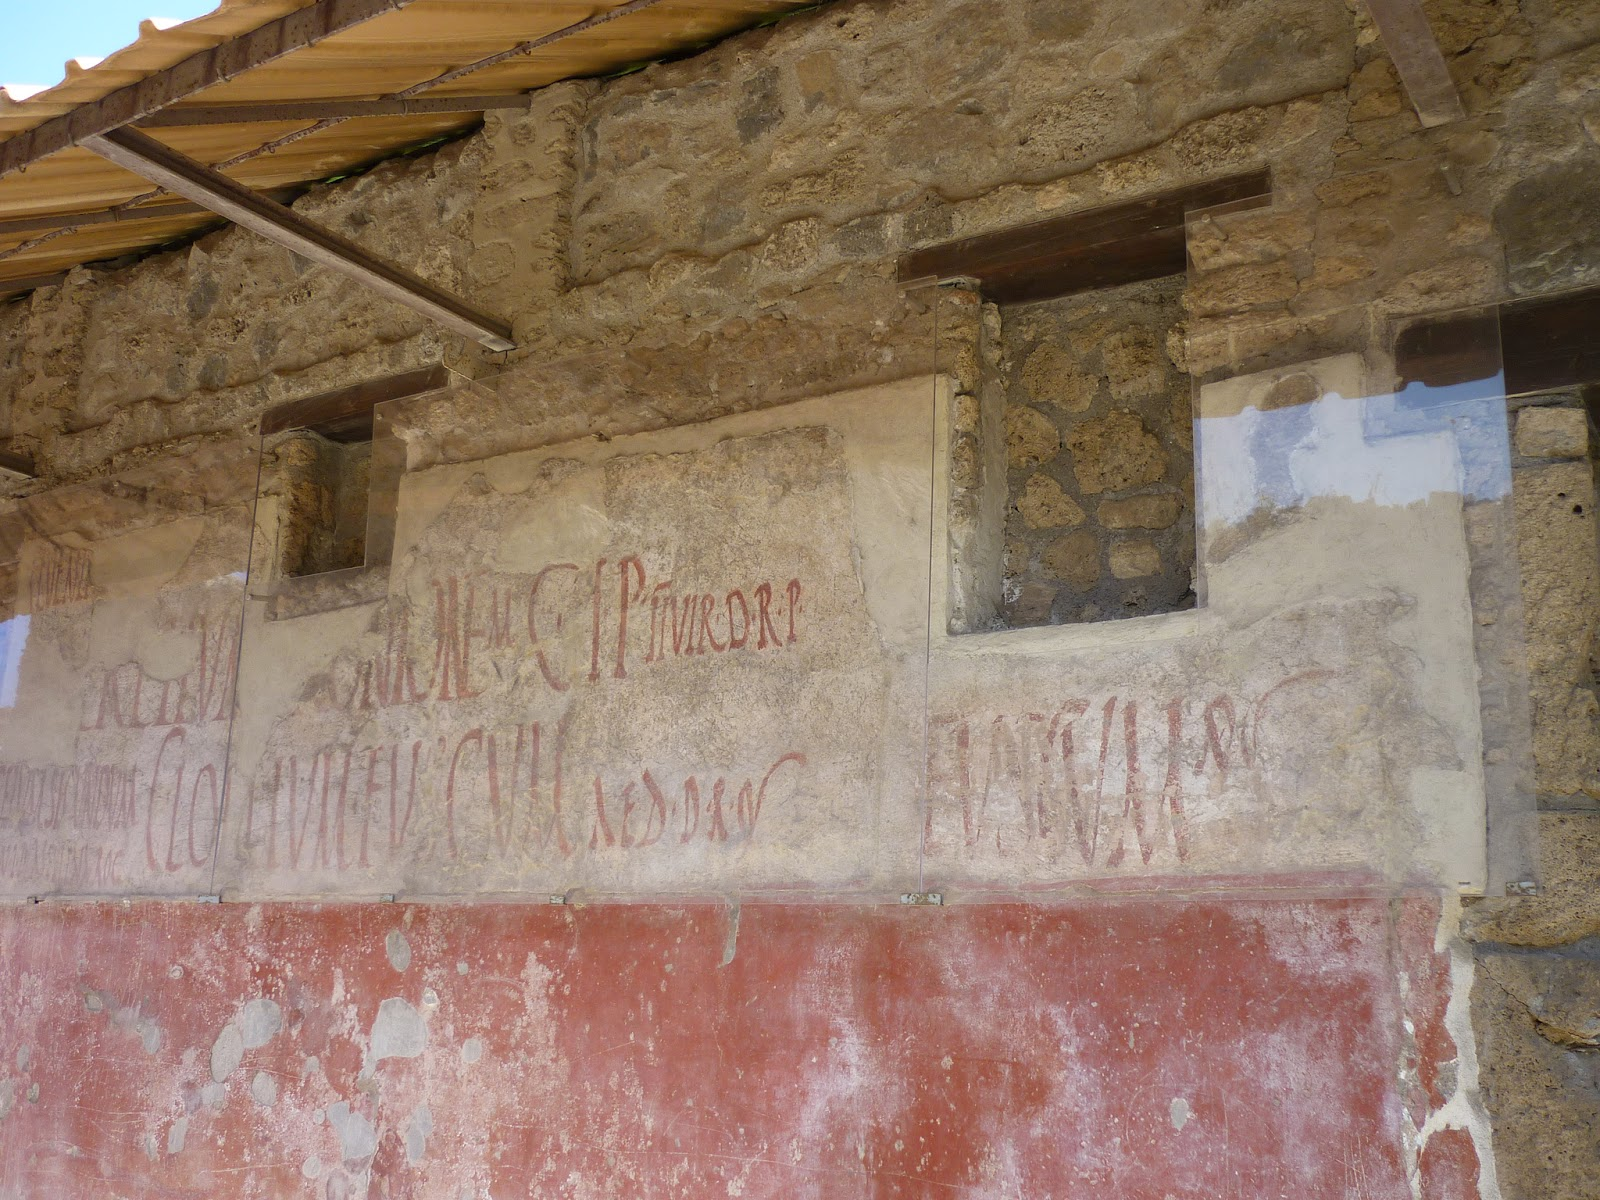 Rome Vocabulary Pics Photos Bridge Parts Diagram Jobspapa On A Preserved Wall Of Pompeii The Roman Town Buried By Eruption Mt Vesuvius Political Graffiti Is Still Readable